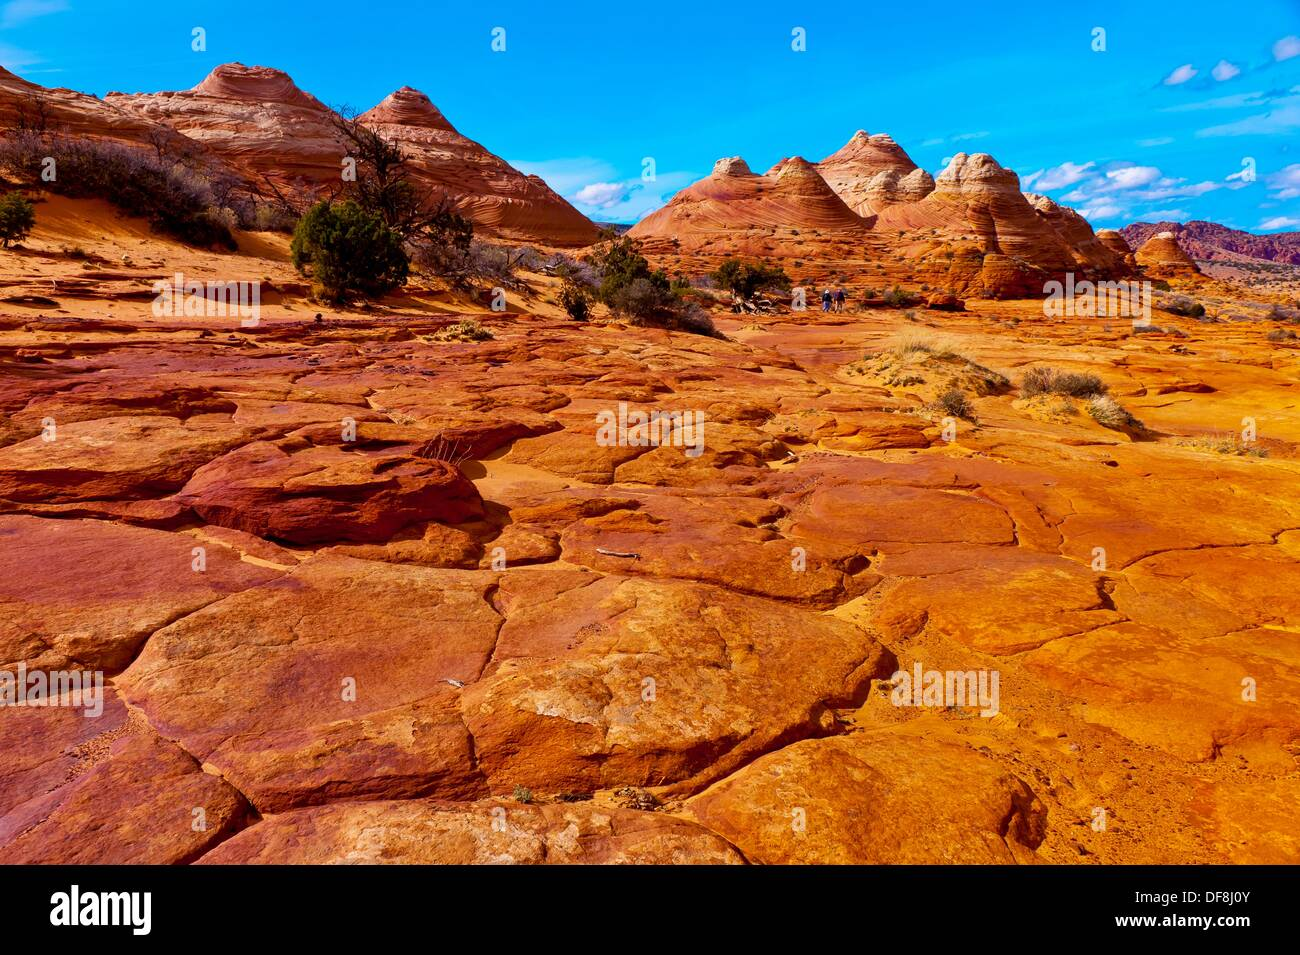 Hiking in the sandstone rock formations of Coyote Buttes North, Paria Canyon-Vermillion Cliffs Wilderness Area, Stock Photo